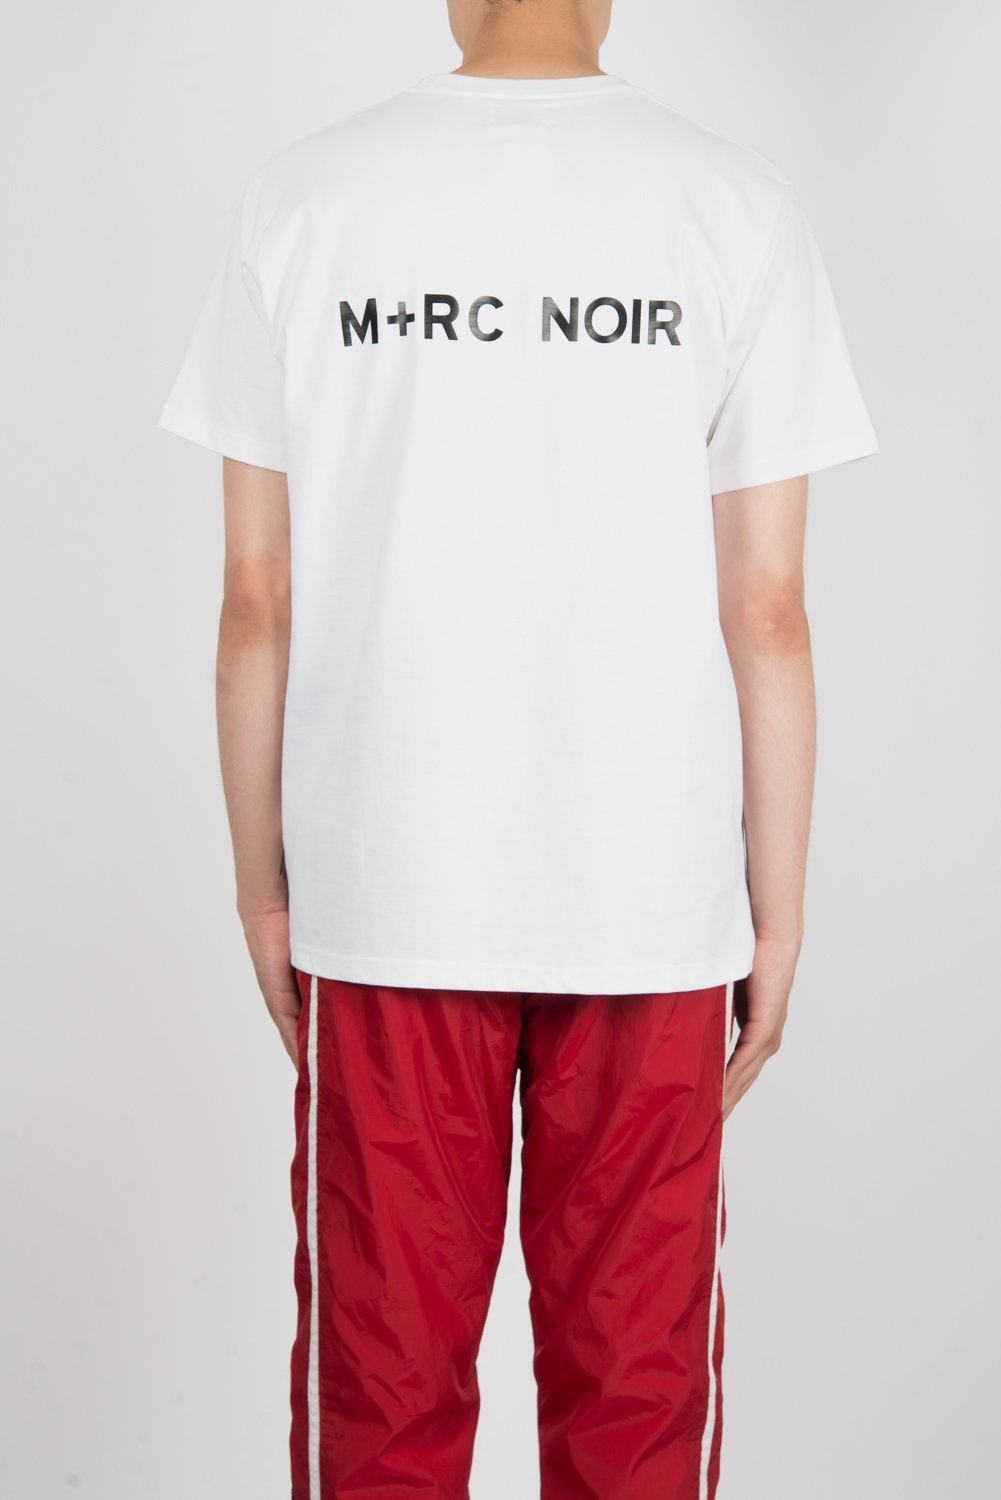 JB愛用★M+RC NOIR NO BASIC Tシャツ IN WHITE【関税送料込】